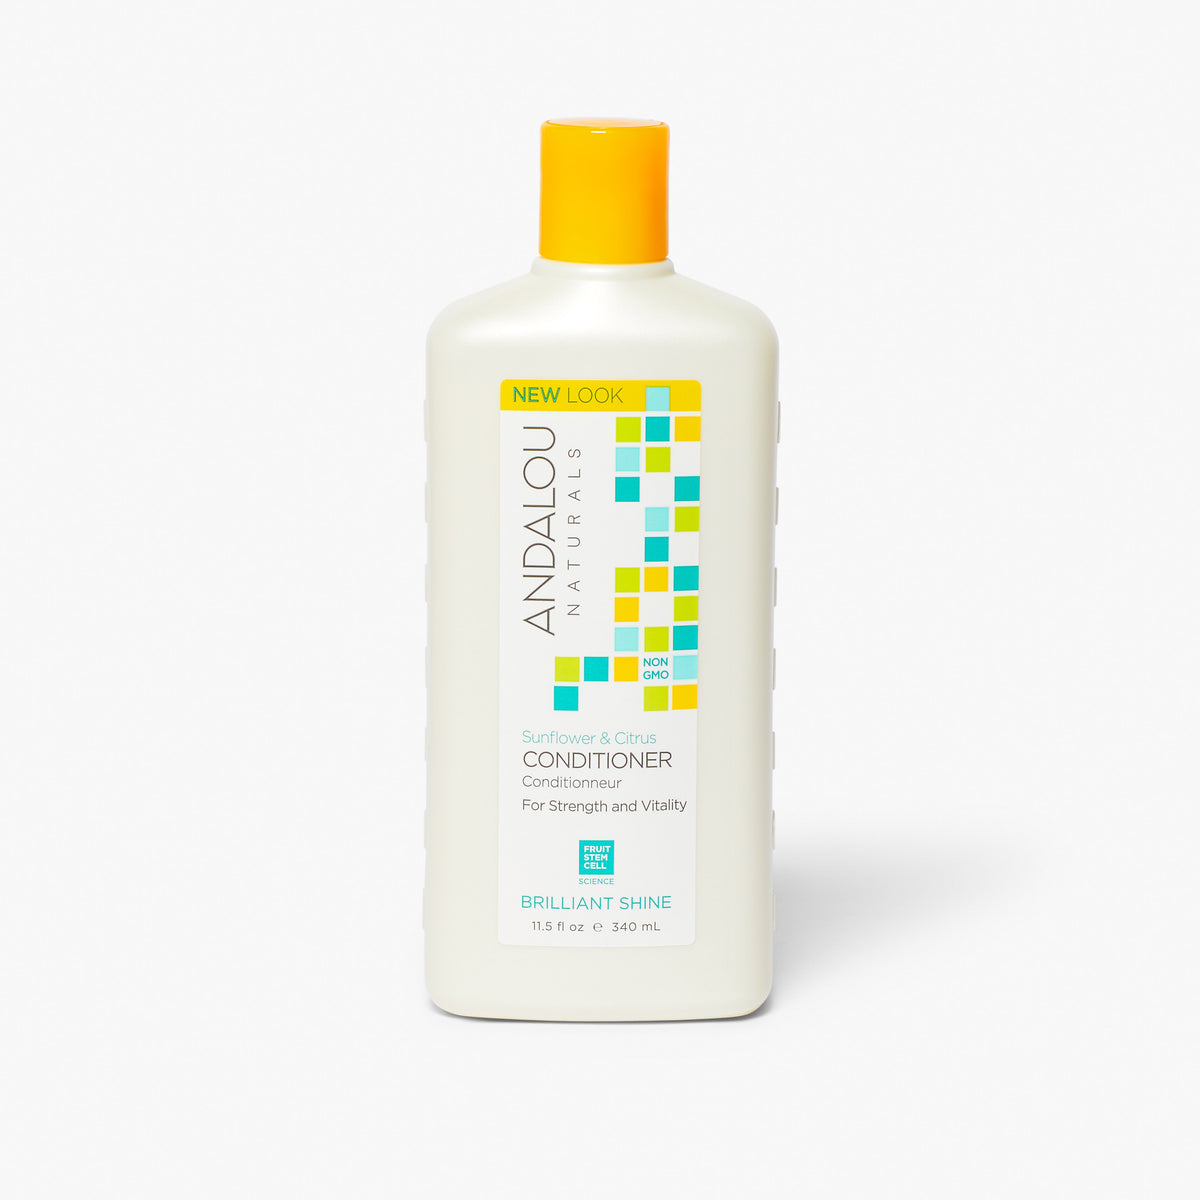 Sunflower & Citrus Brilliant Shine Conditioner